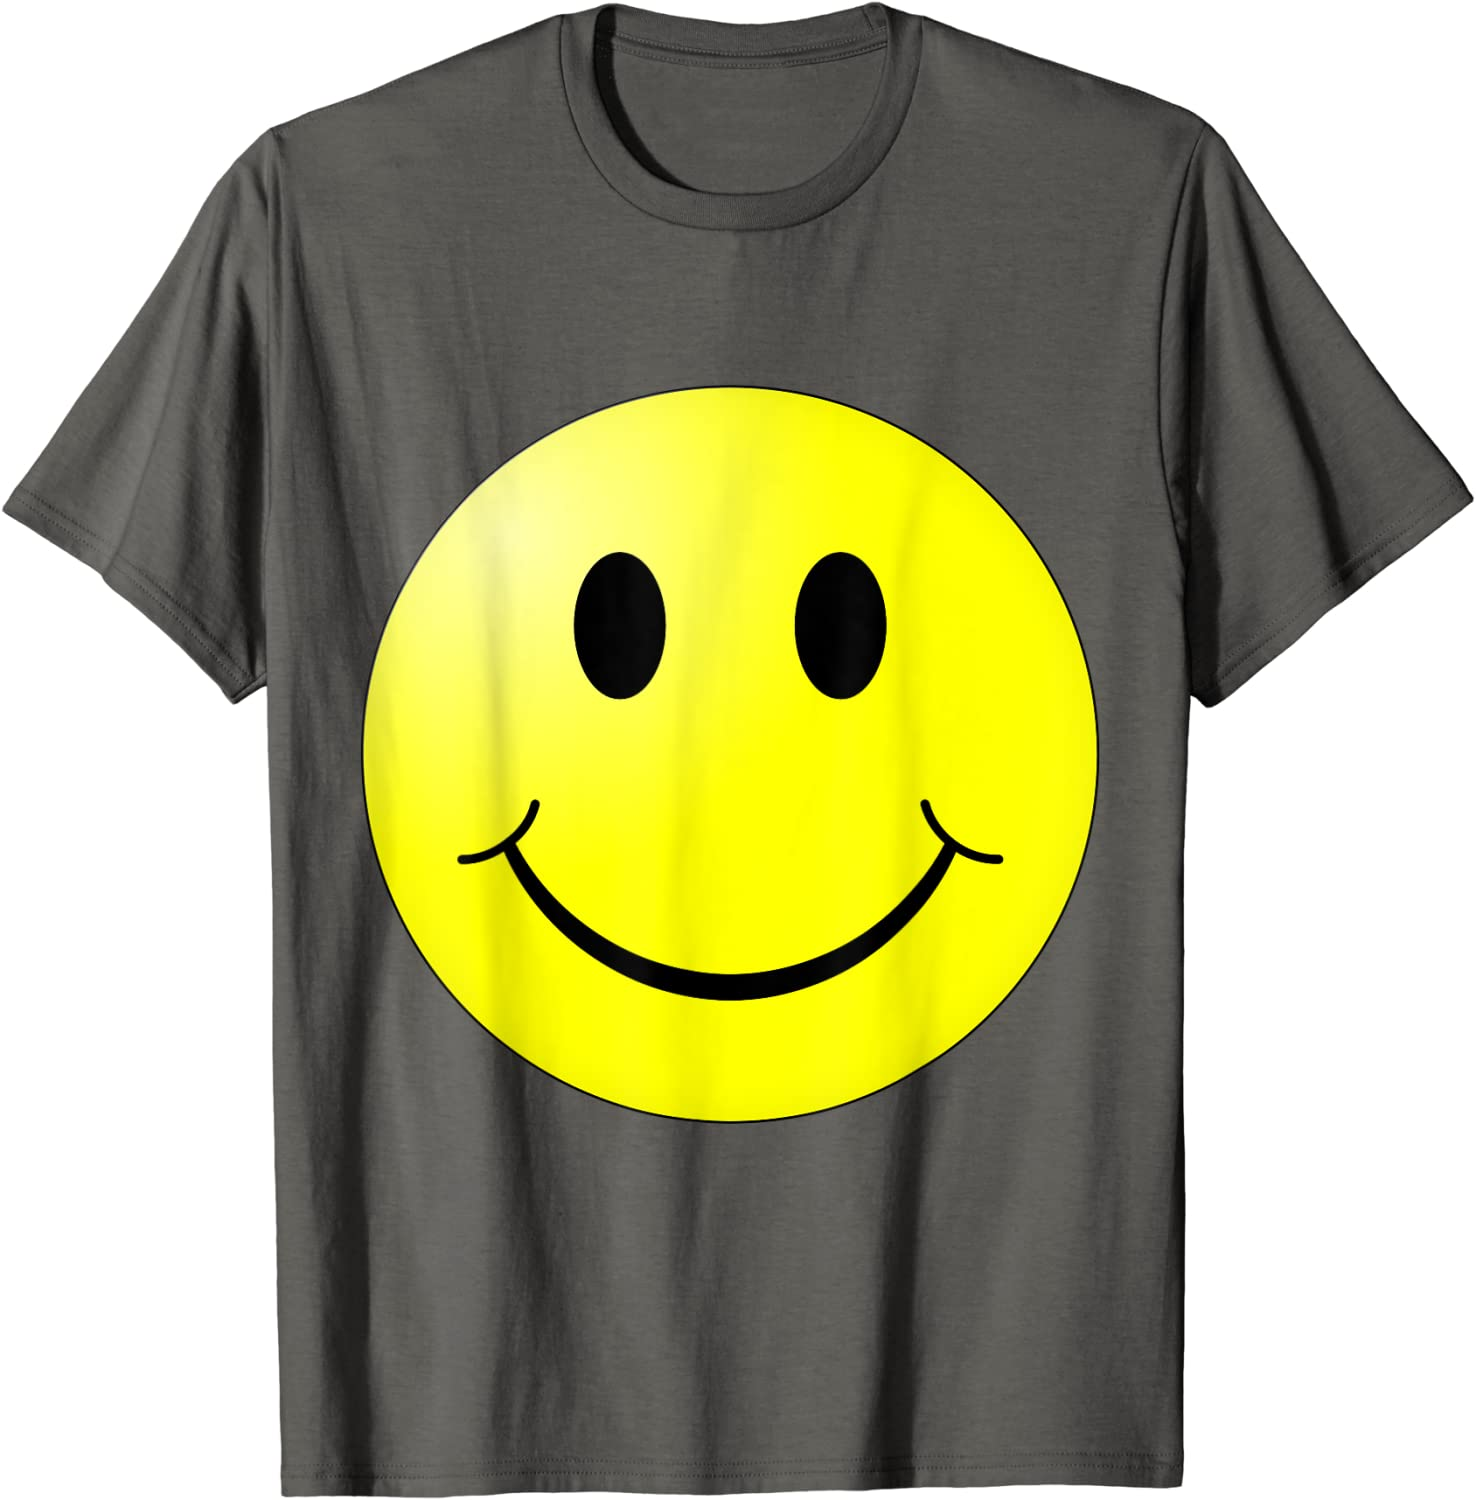 T shirt with Emoji Smiley Faces